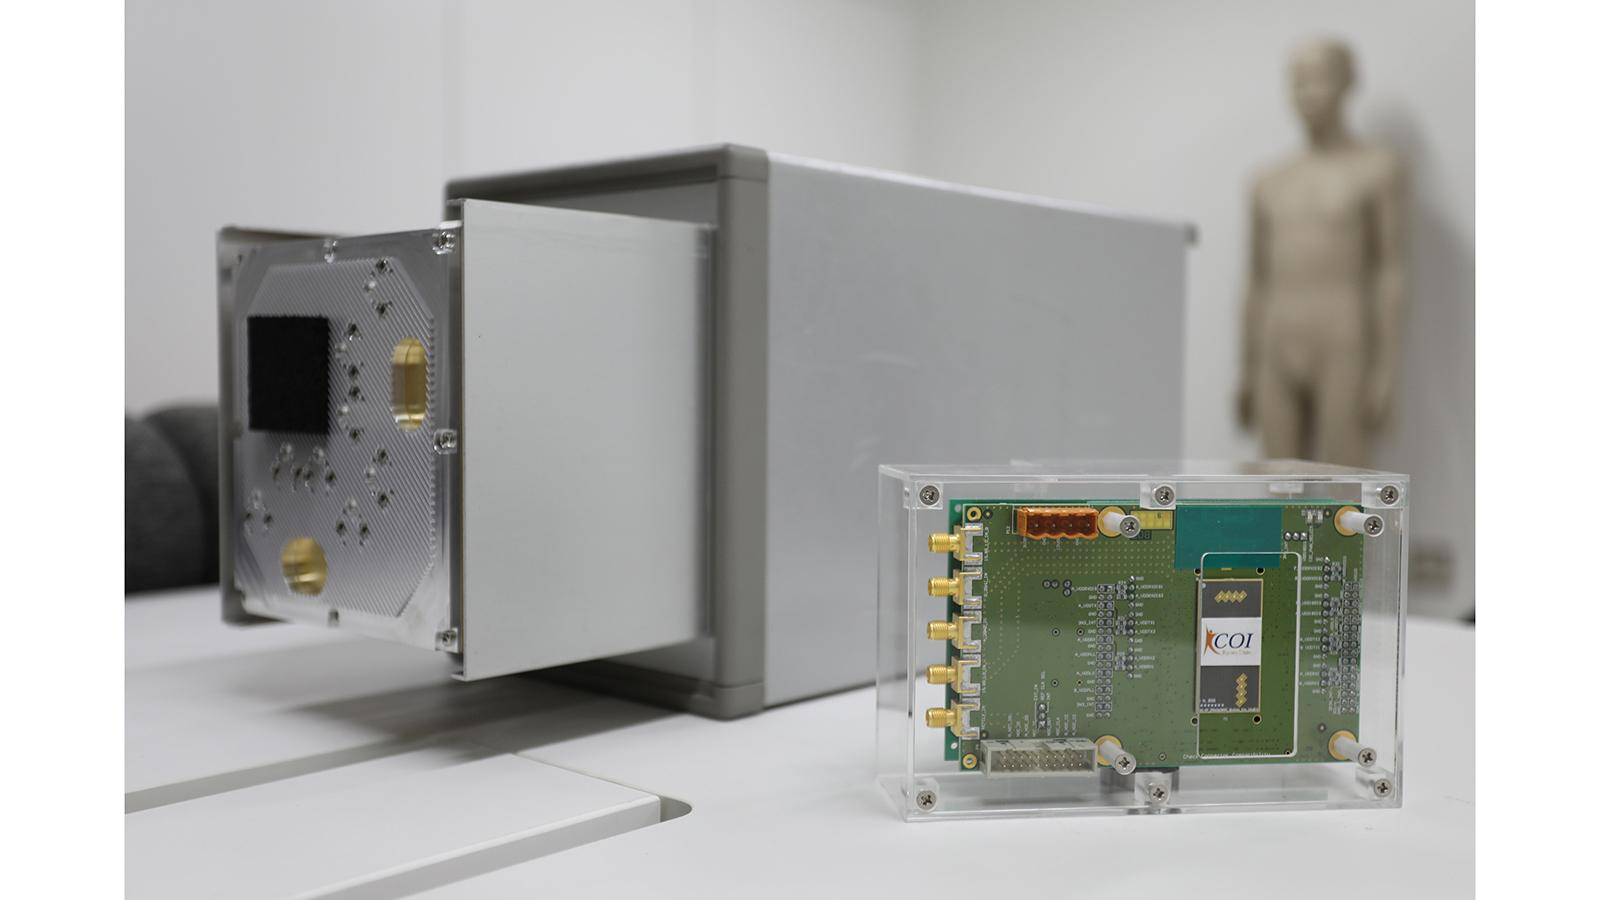 Comparison of new and old radar devices